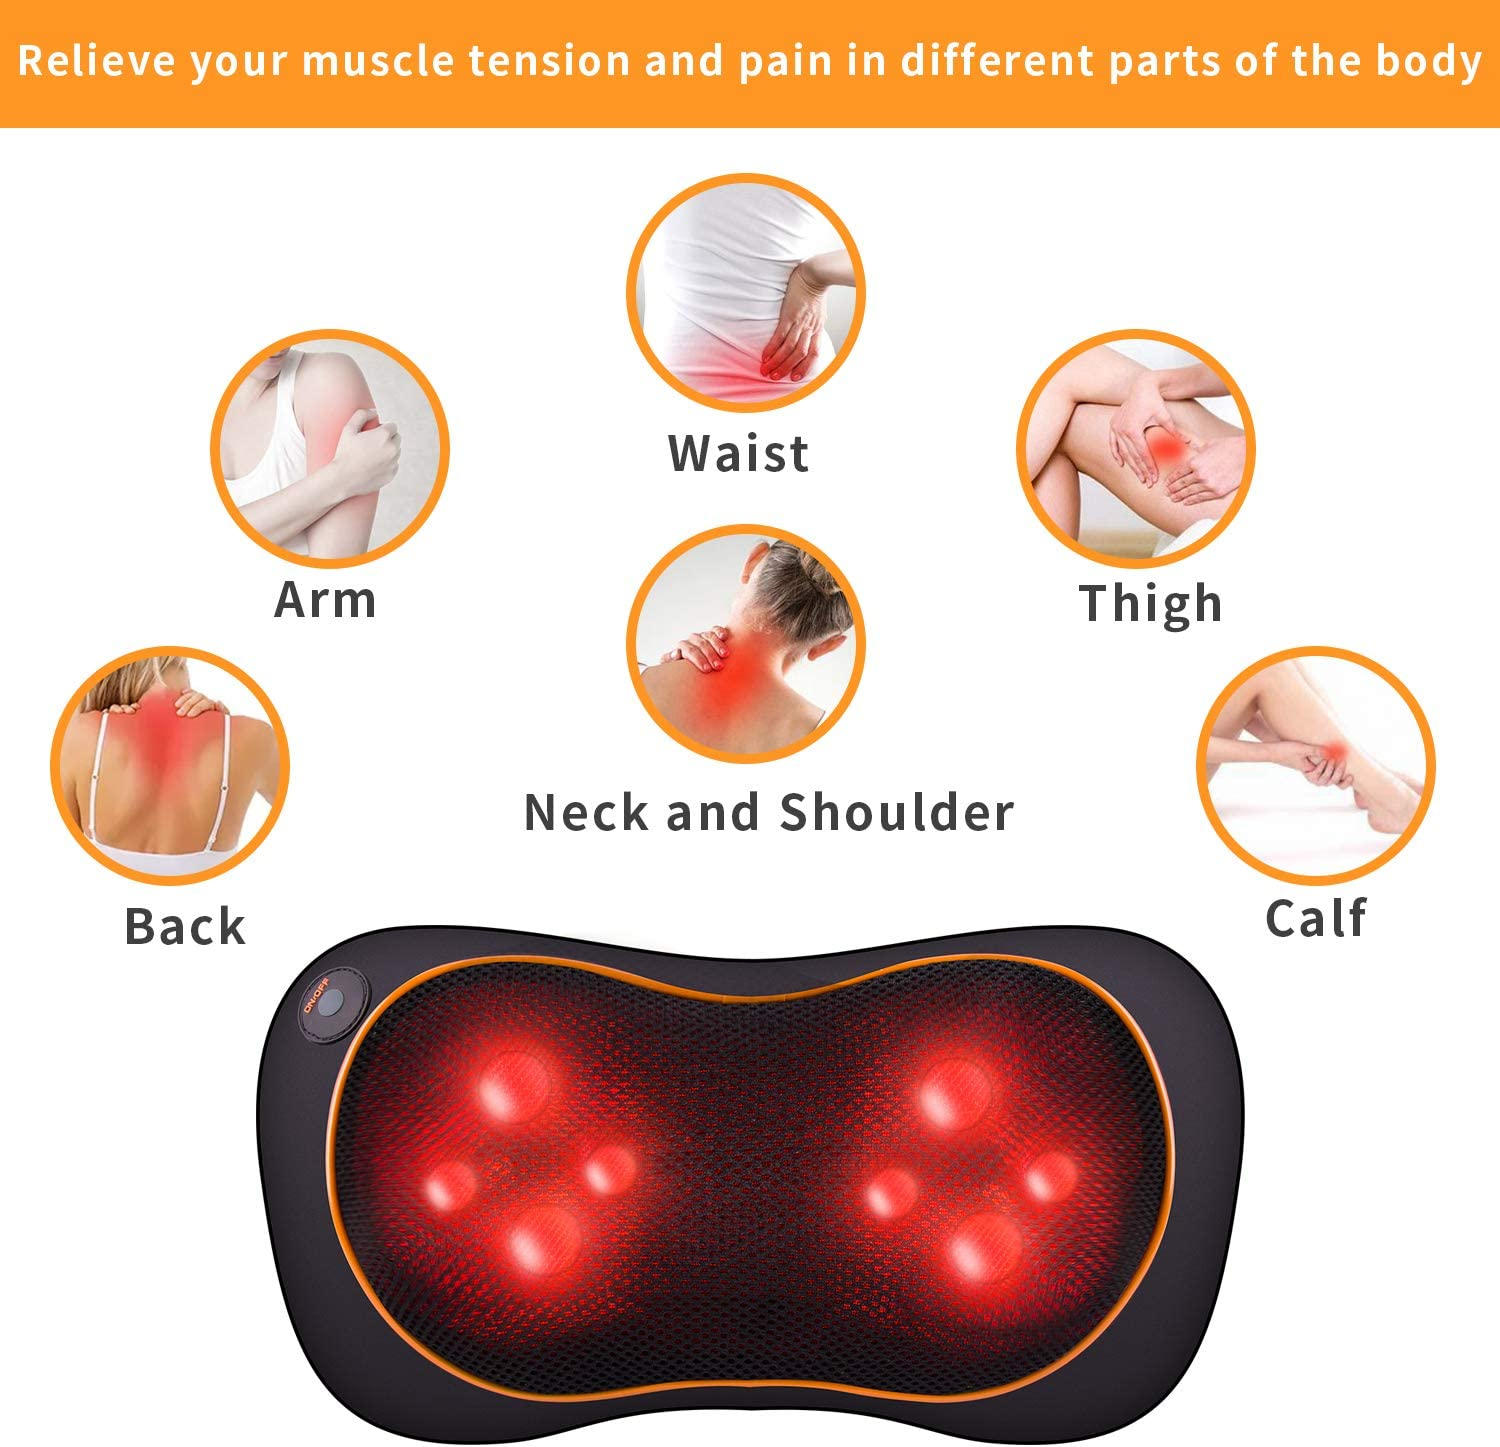 Shiatsu Massage Pillow Neck Back Massager with Heat, Deep Tissue Kneading Massage for Shoulder, Lower Back, Calf, Legs, Foot Muscle Pain Relief – Home, Office Car Use